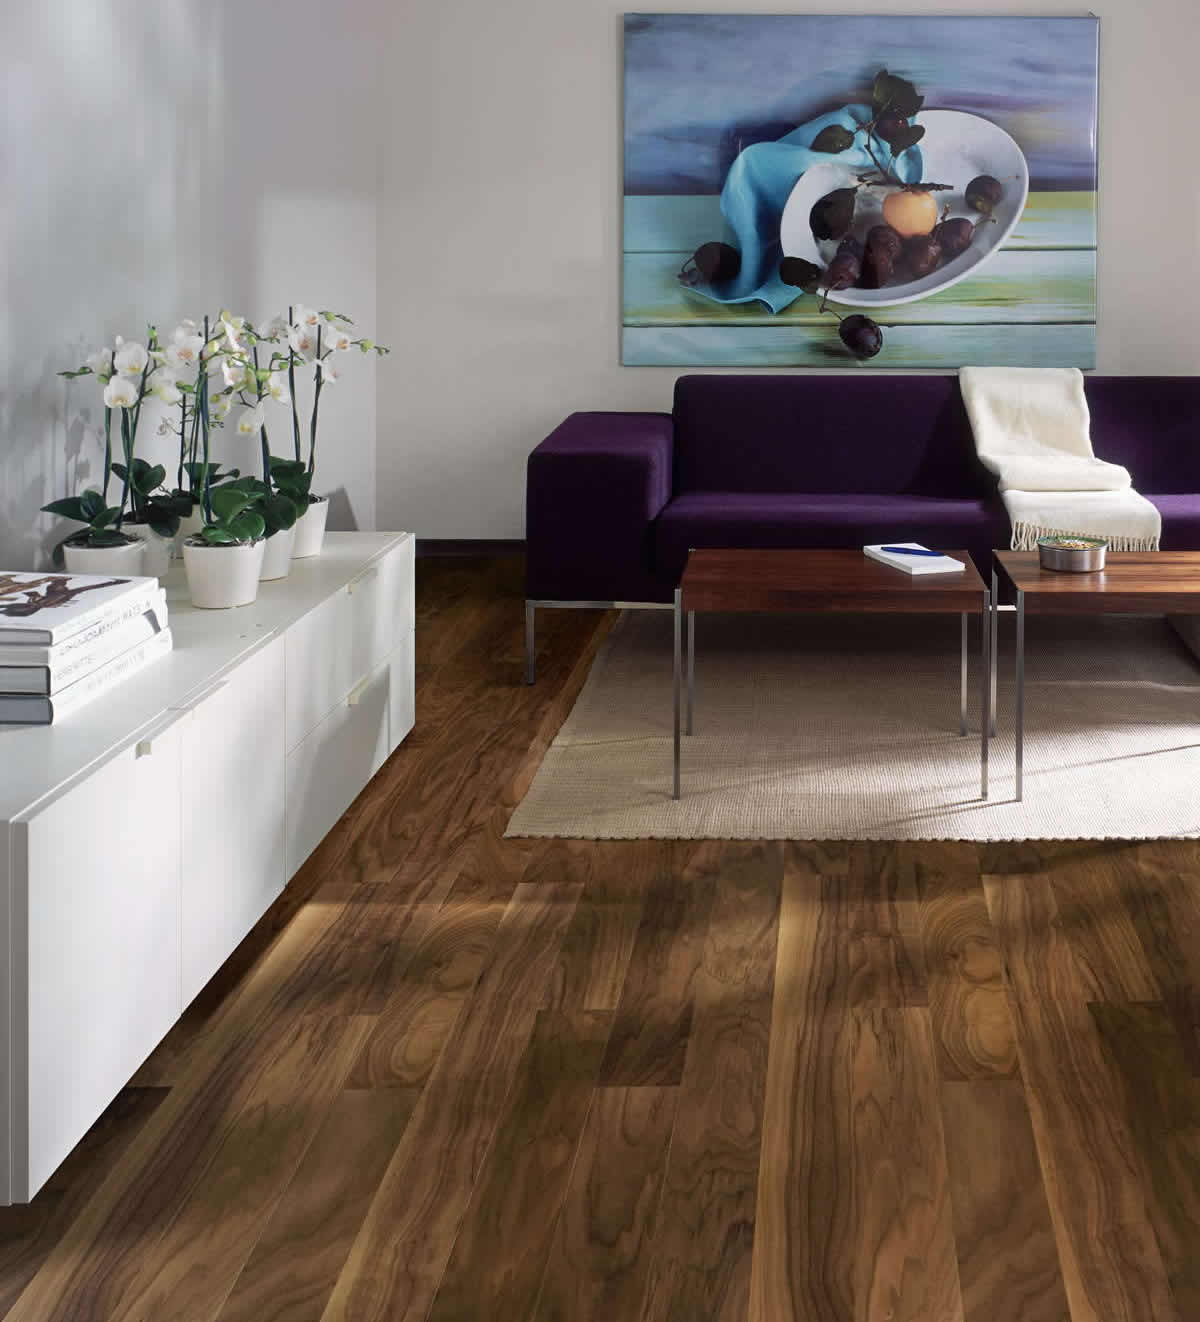 Walnut flooring and also hardwood floor samples and also engineered hardwood flooring and also laying wood flooring